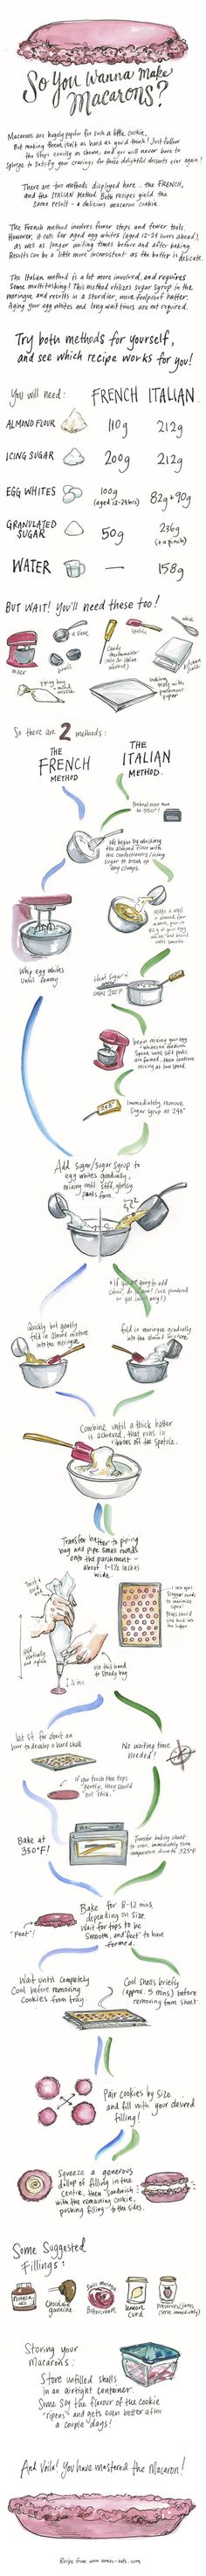 macaron recipe illustrated